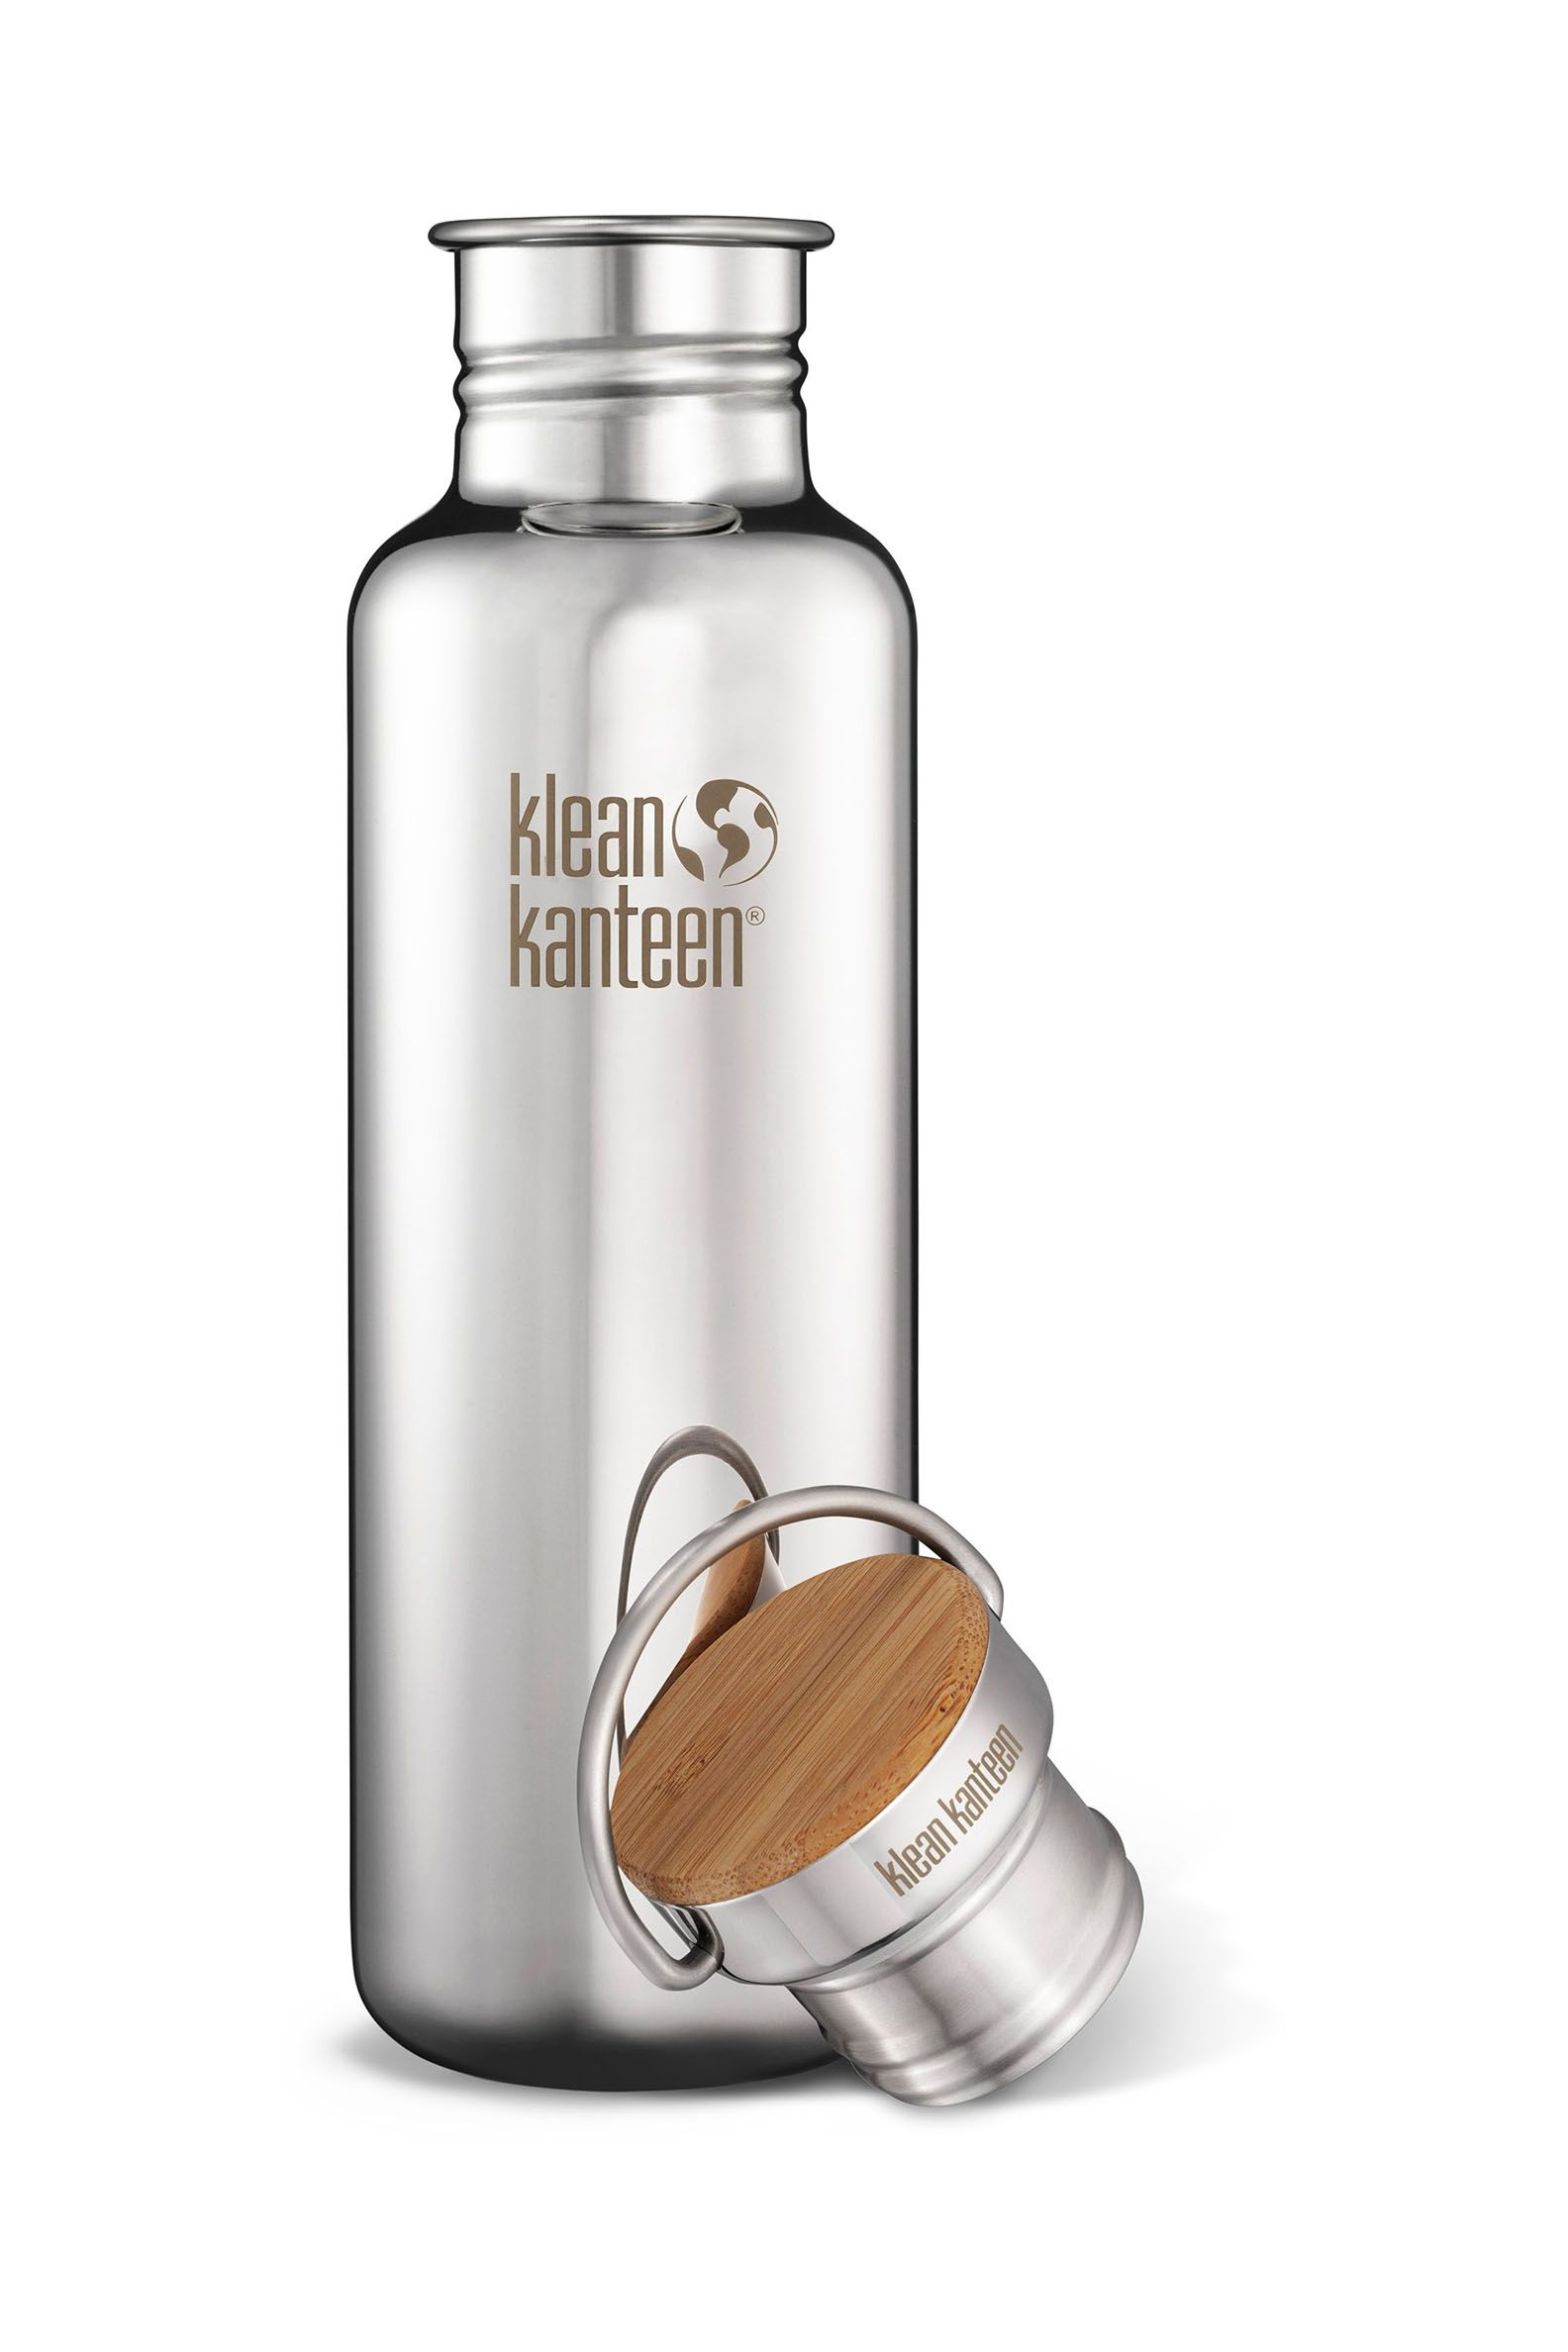 Klean Kanteen Stainless Classic Water Bottle Reflect Brushed Bamboo Cap 27oz